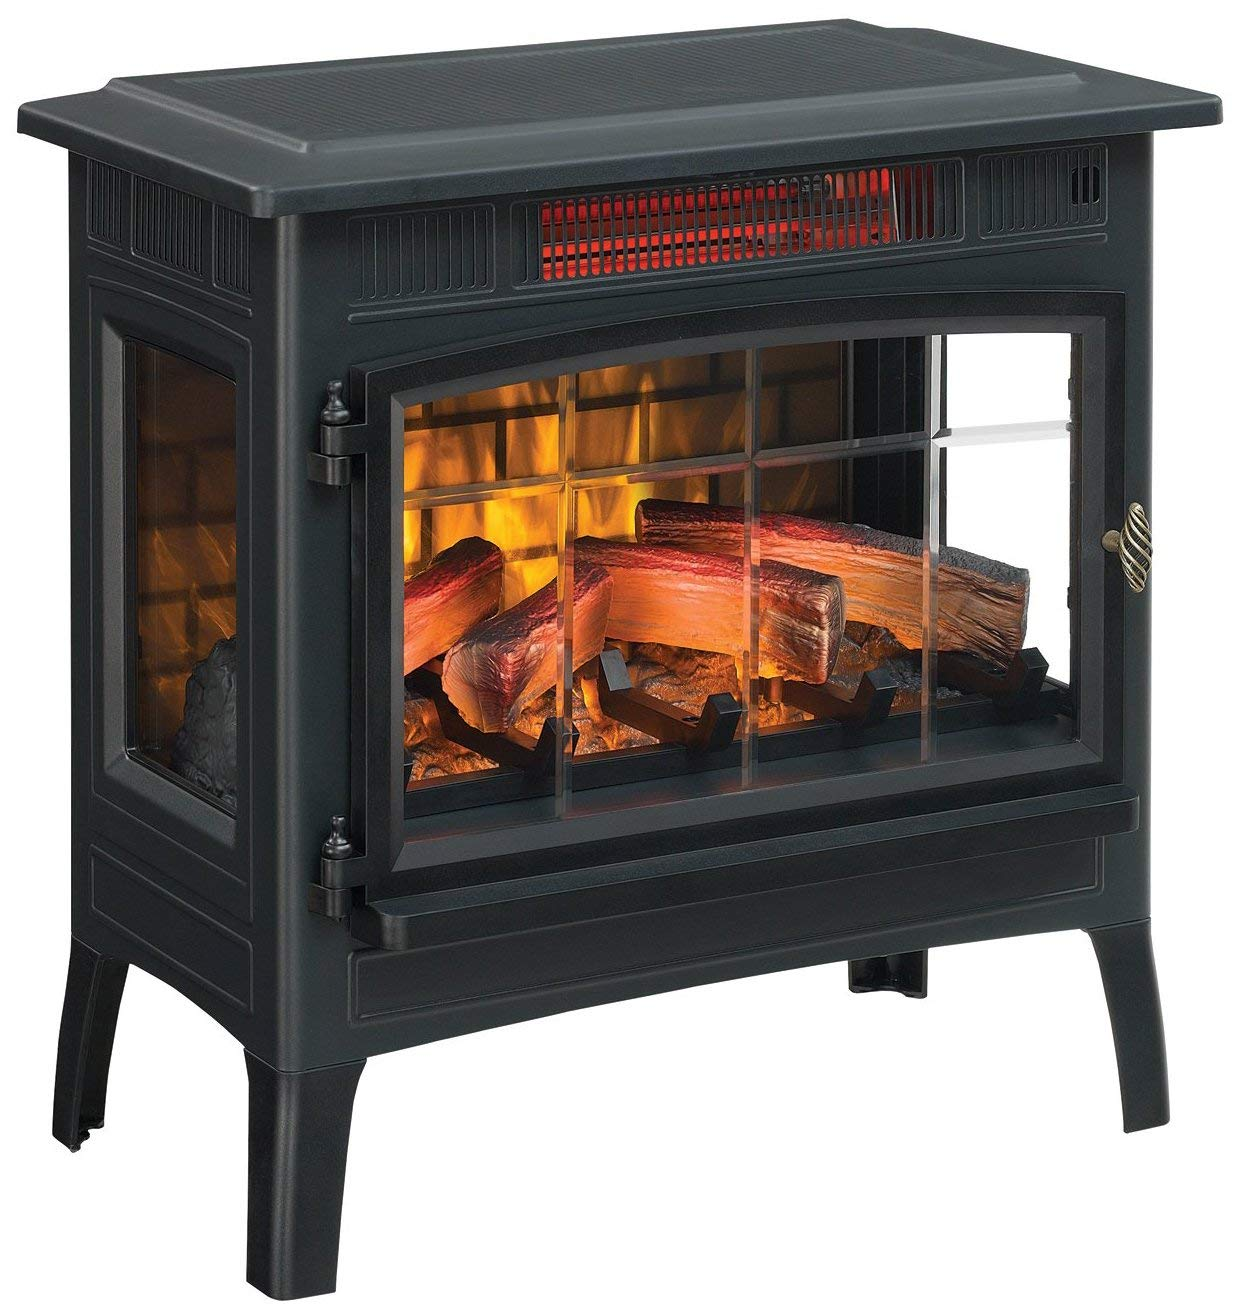 Best Electric Stove Fireplace Best Electric Fireplace 2019 Electric Fireplace Reviews